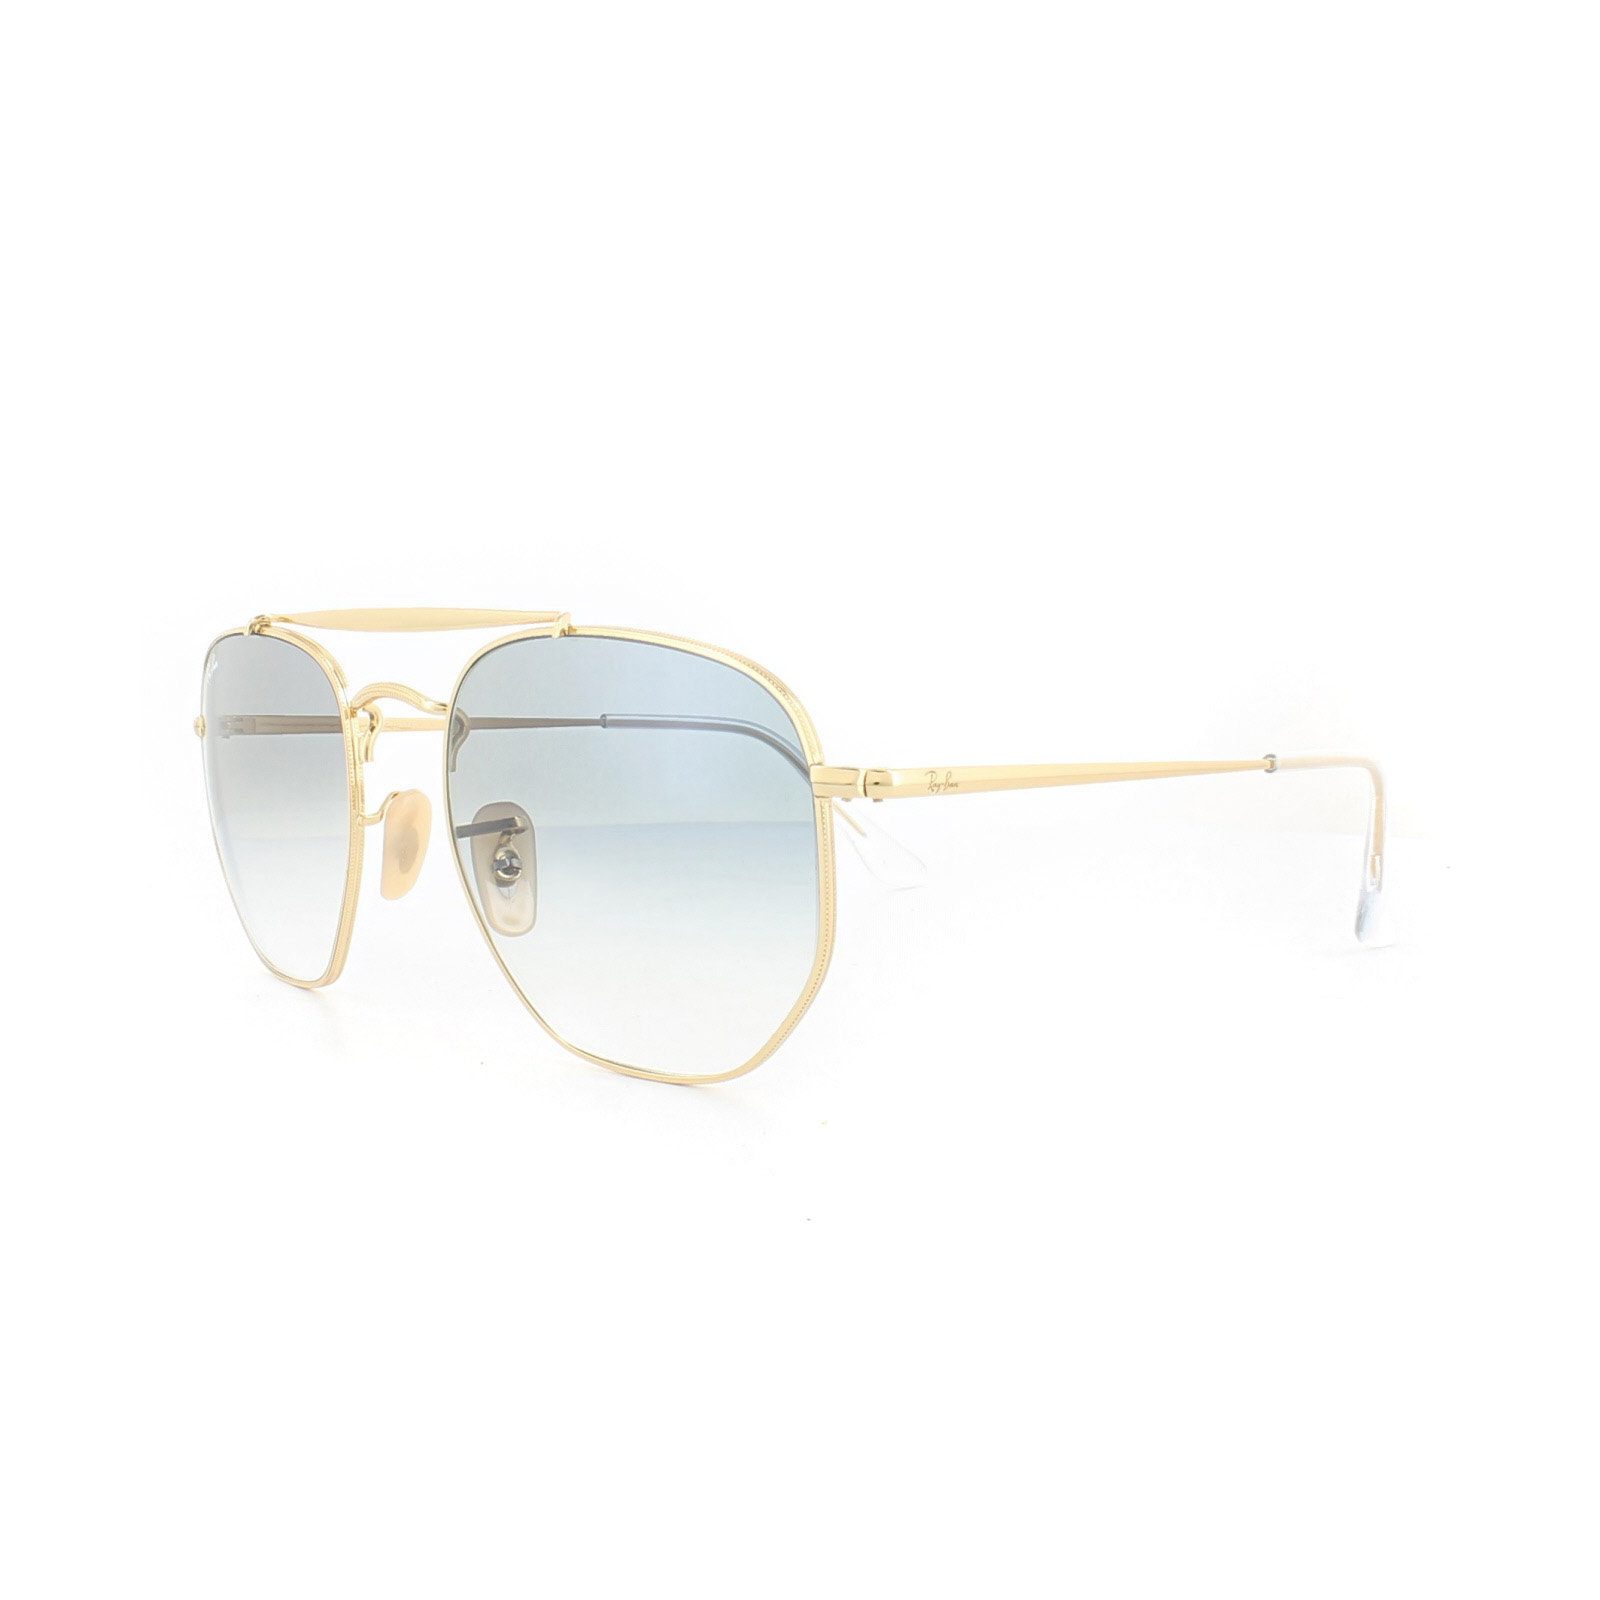 7e0aee0a6ab69 Sentinel Ray-Ban Sunglasses Marshal 3648 001 3F Gold Light Blue Gradient